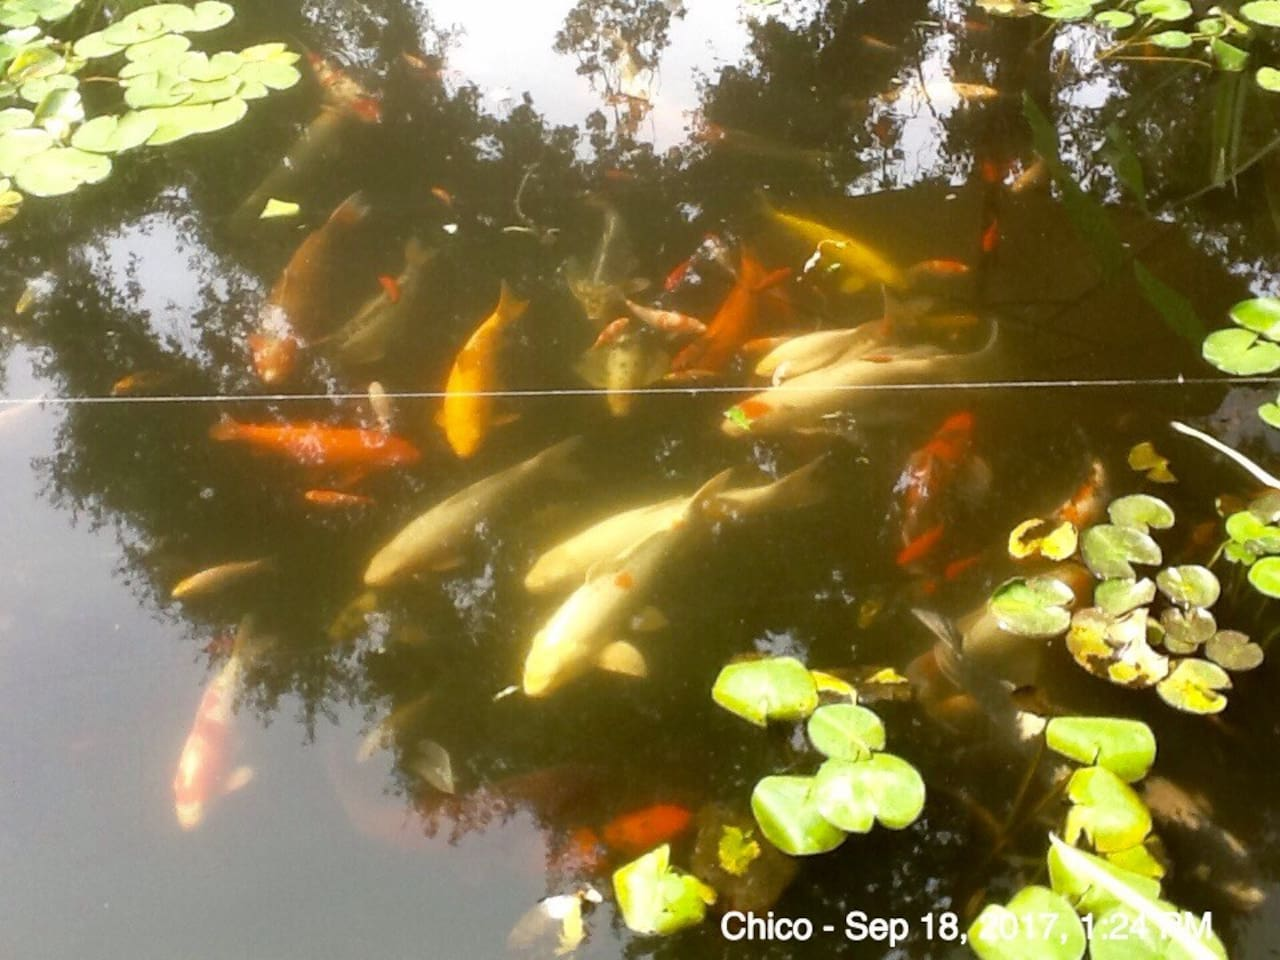 Some of my koi. I feed in the afternoon. It's a frenzy!